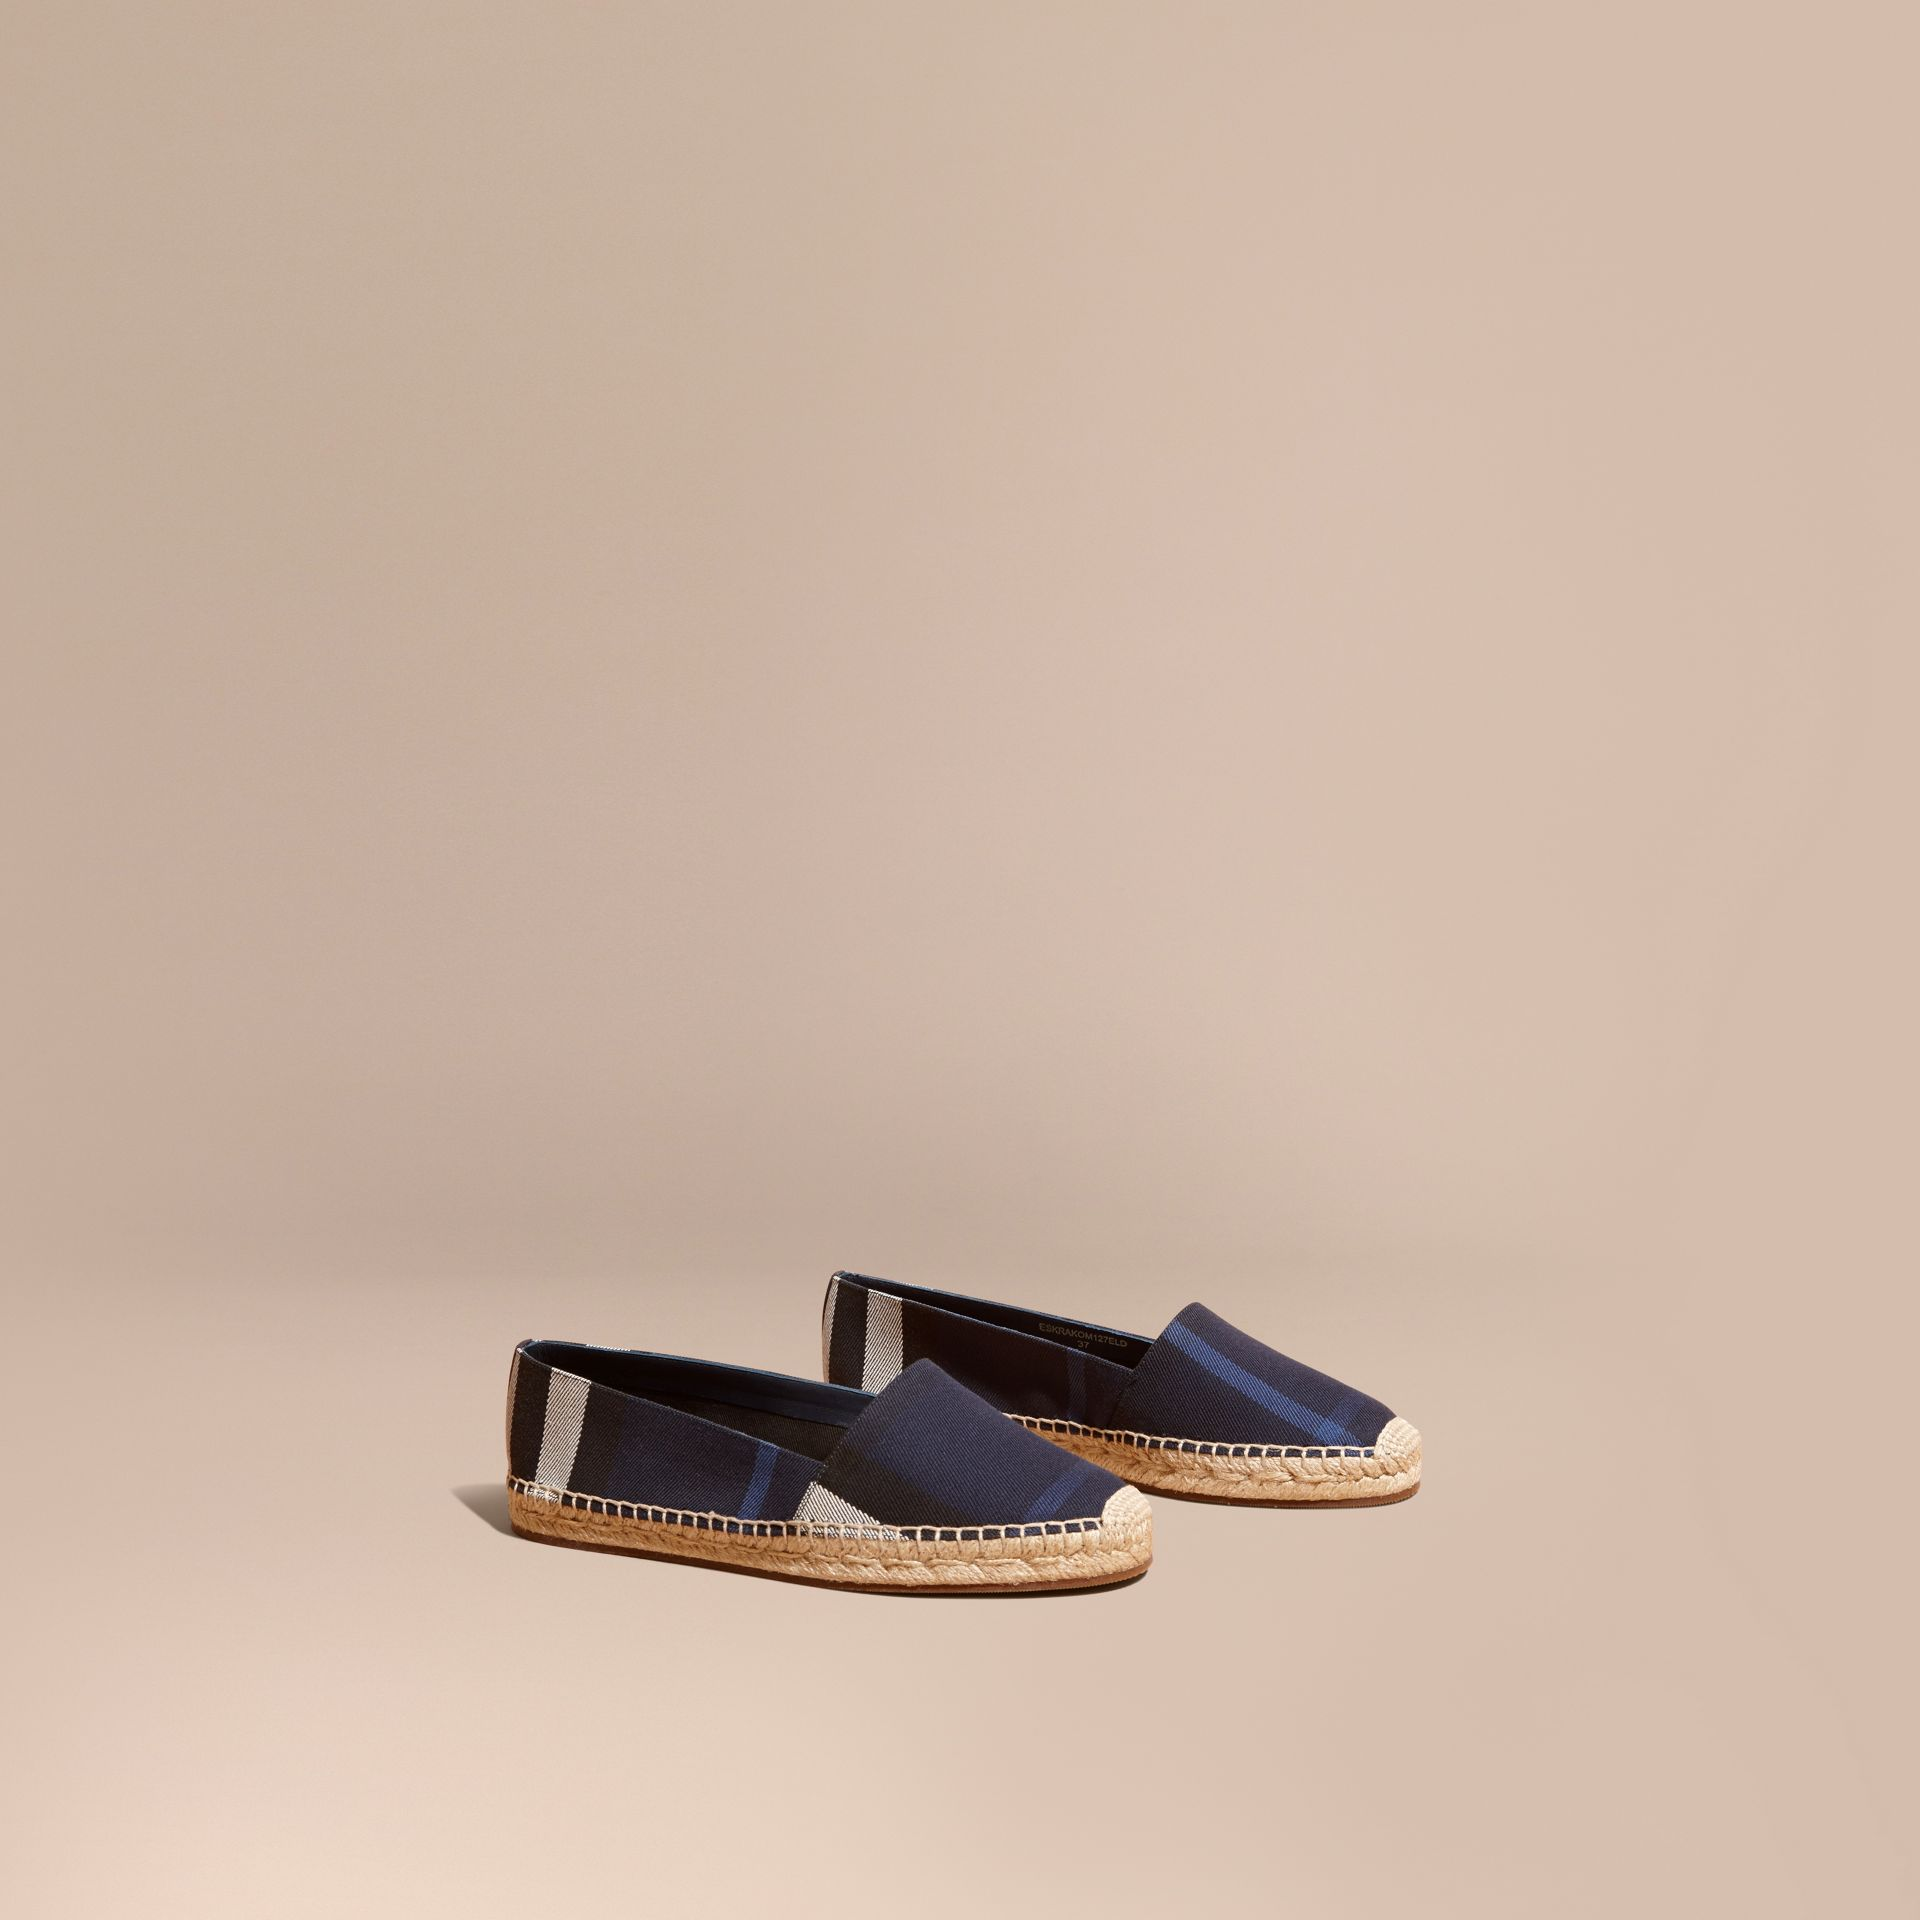 Leather Trim Canvas Check Espadrilles in Indigo Blue - Women | Burberry - gallery image 1